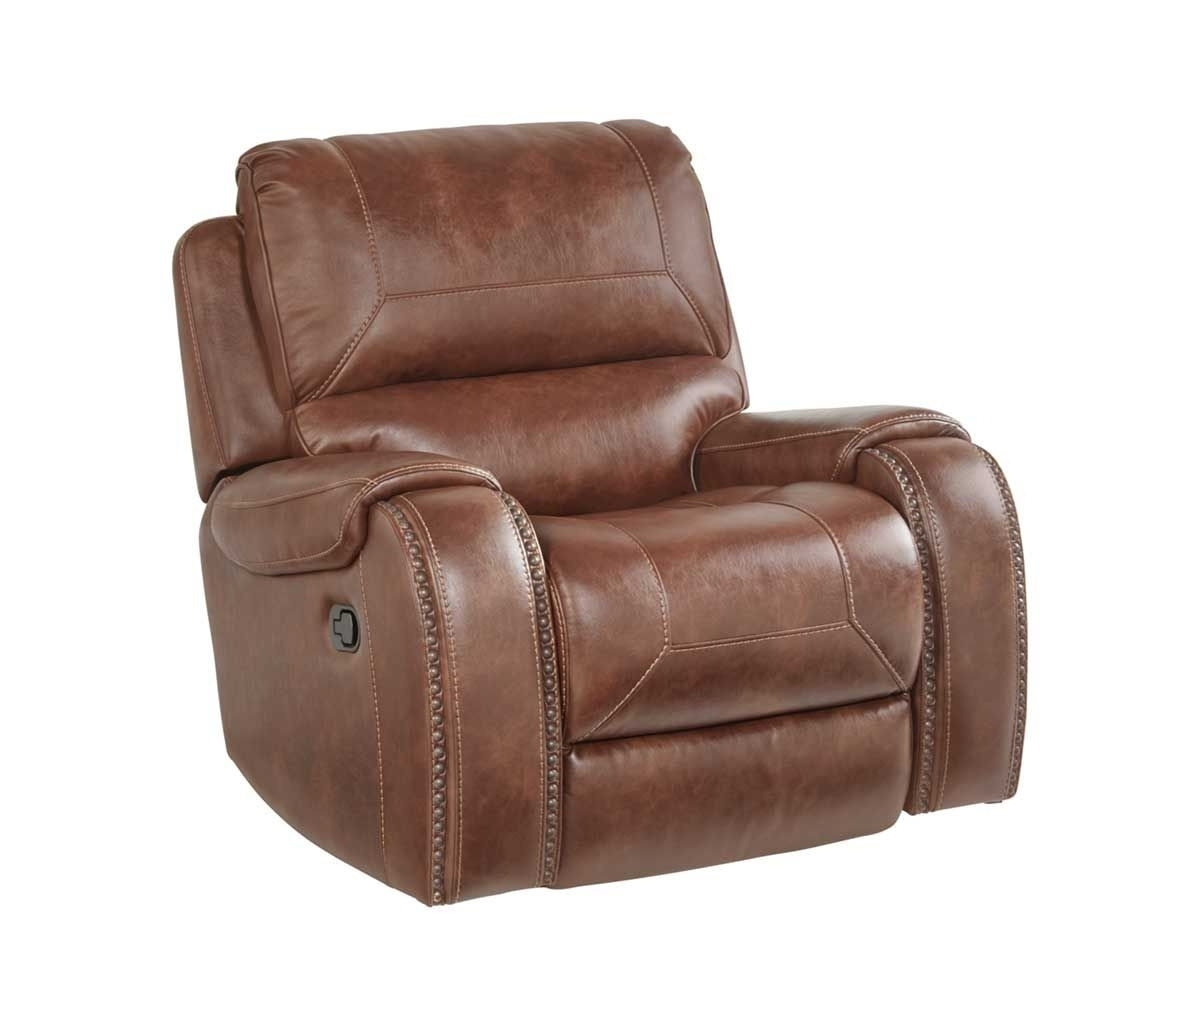 Waylon Recliner | Badcock &more Intended For Waylon 3 Piece Power Reclining Sectionals (Photo 4 of 30)